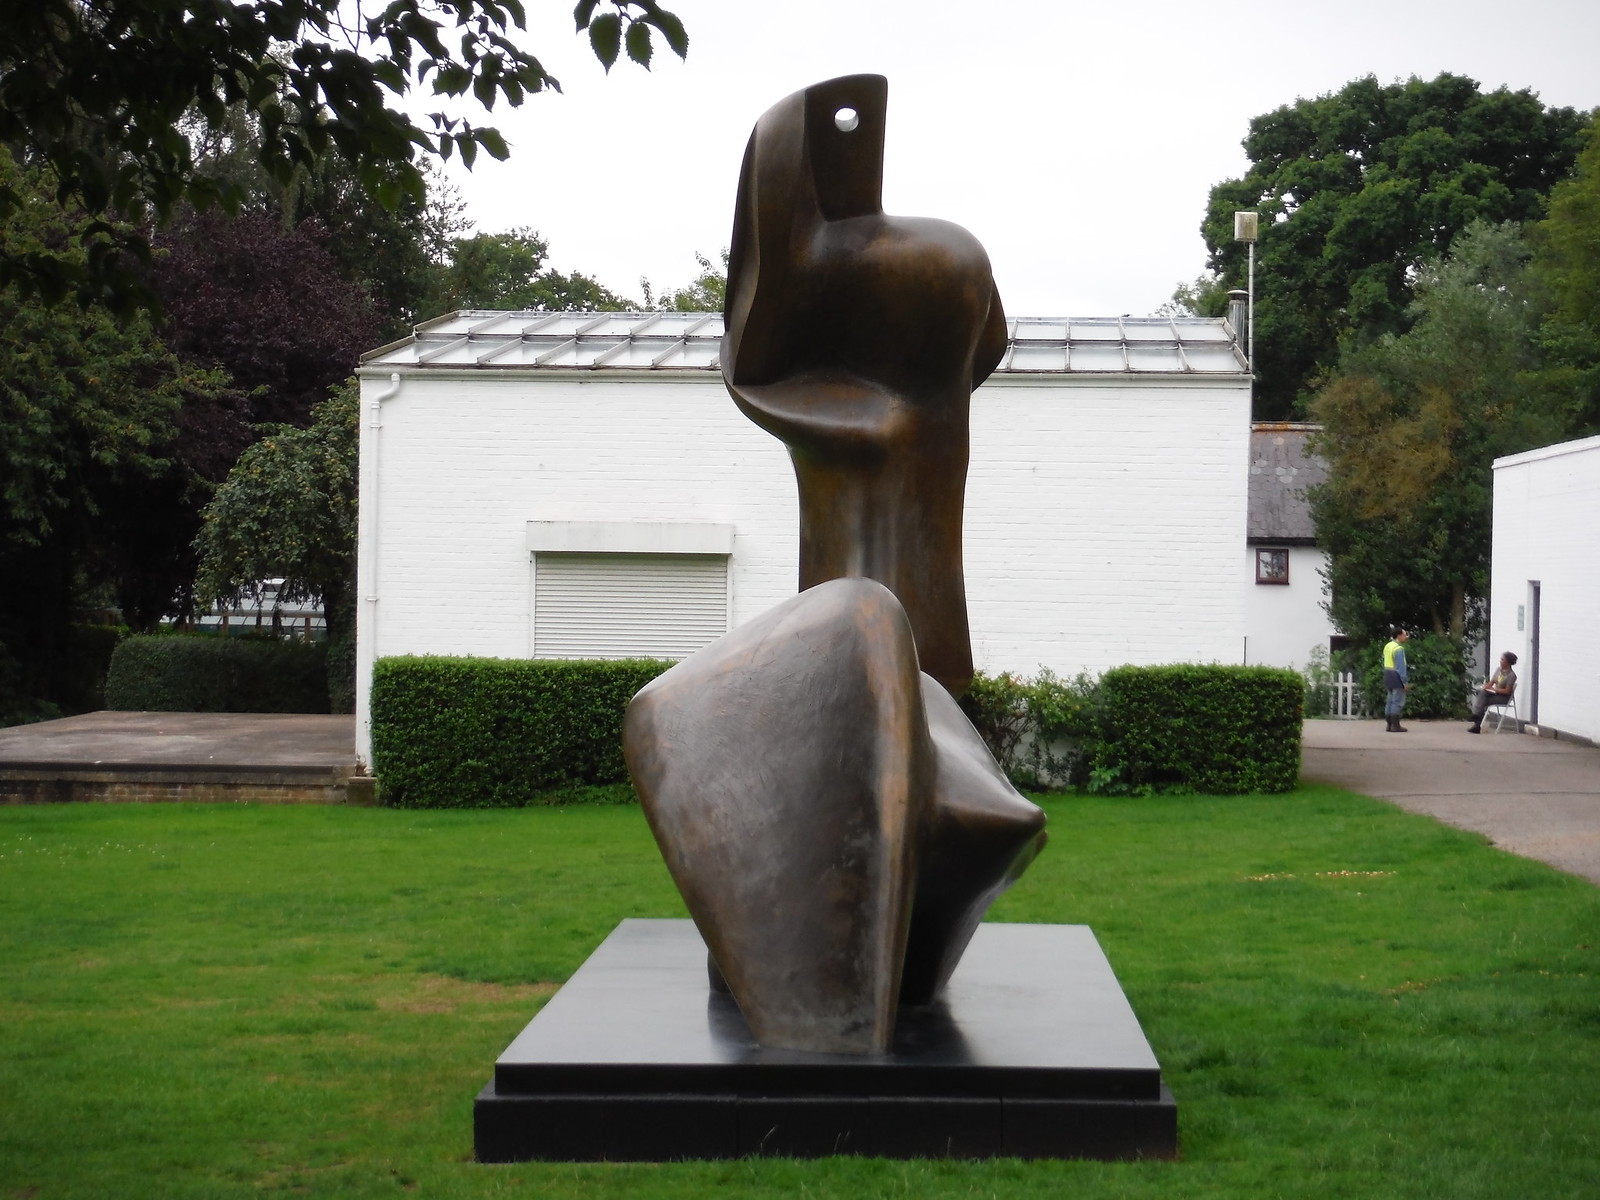 Two Piece Reclining Figure: Cut (1979-81) [II] SWC Walk 164 Roydon to Sawbridgeworth via Henry Moore Foundation